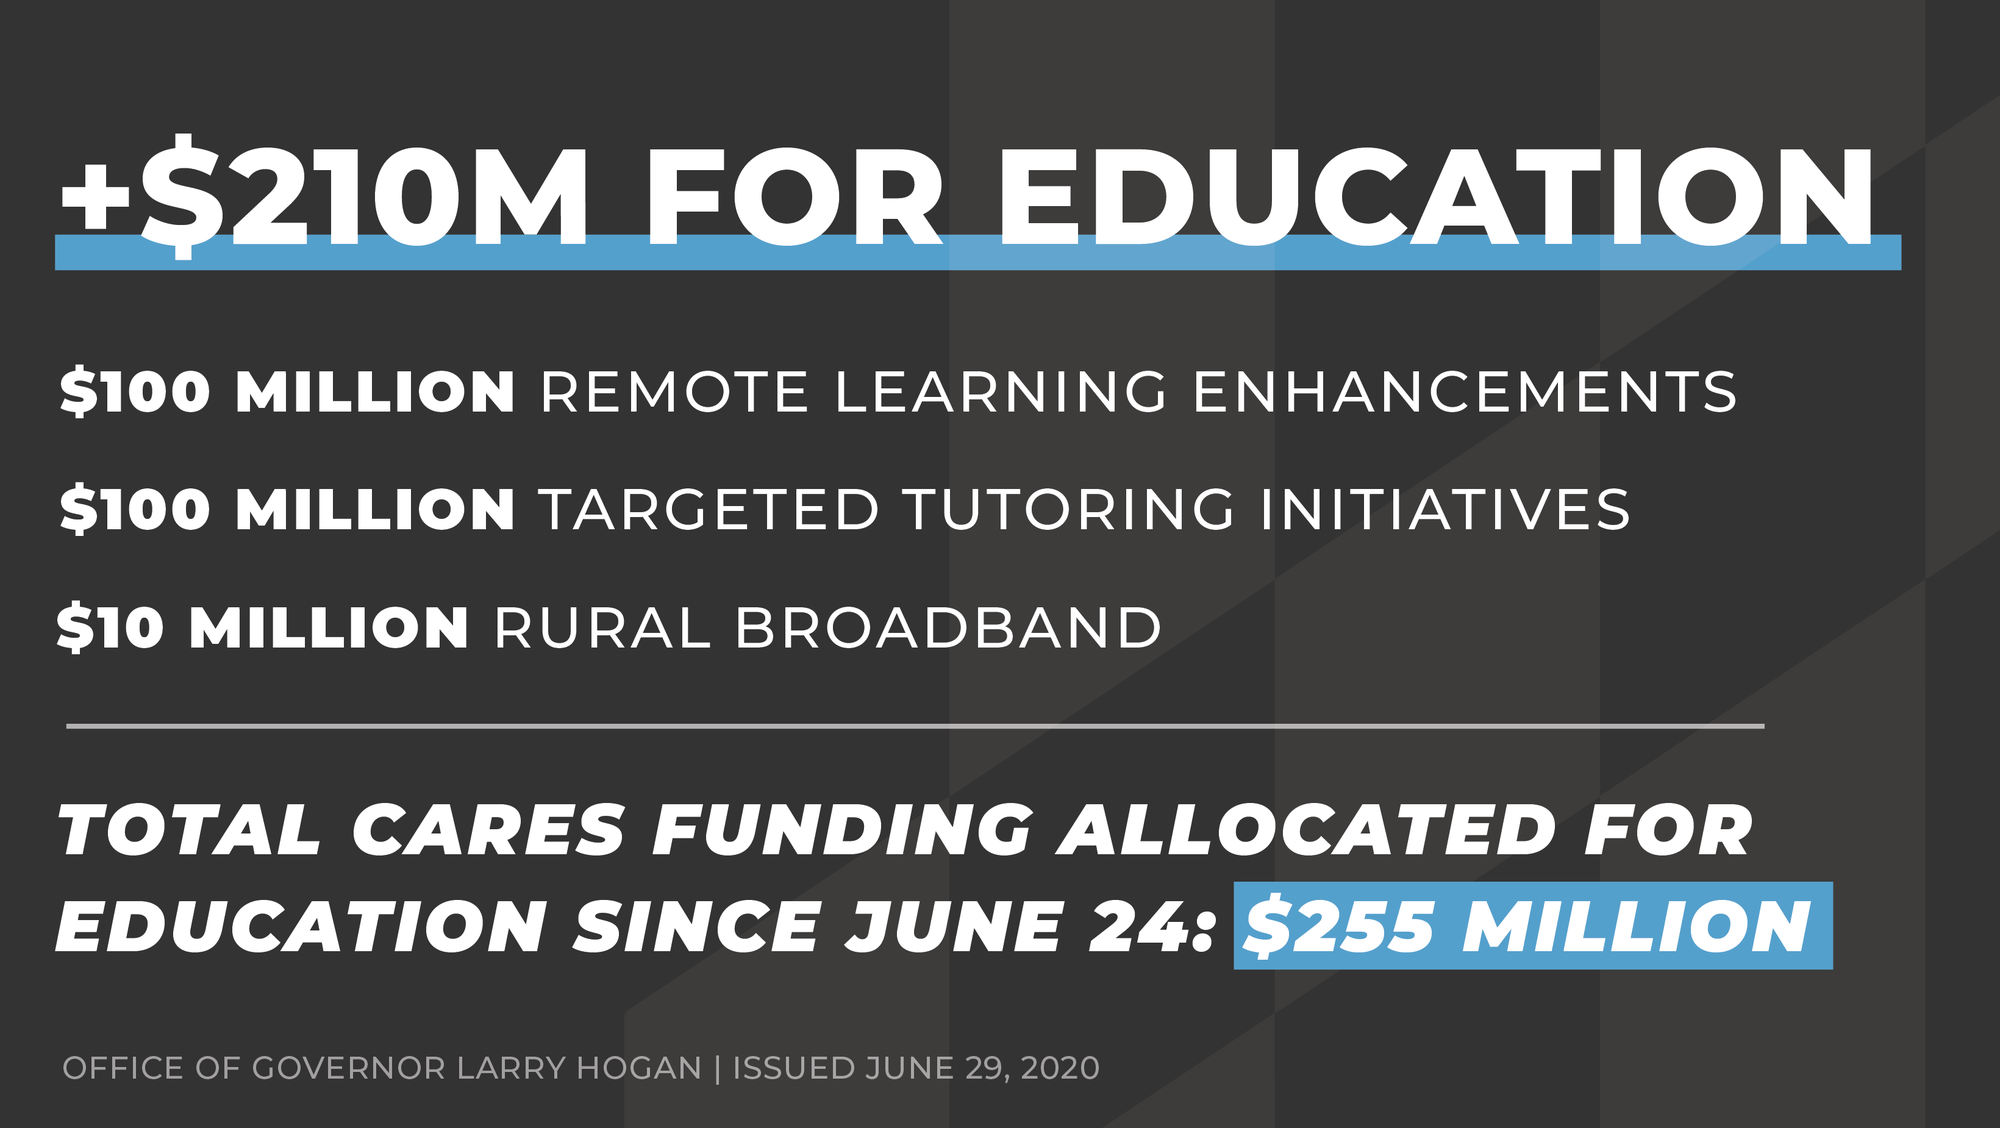 Hogan Announces $210 Million for Remote Learning and Targeted Tutoring